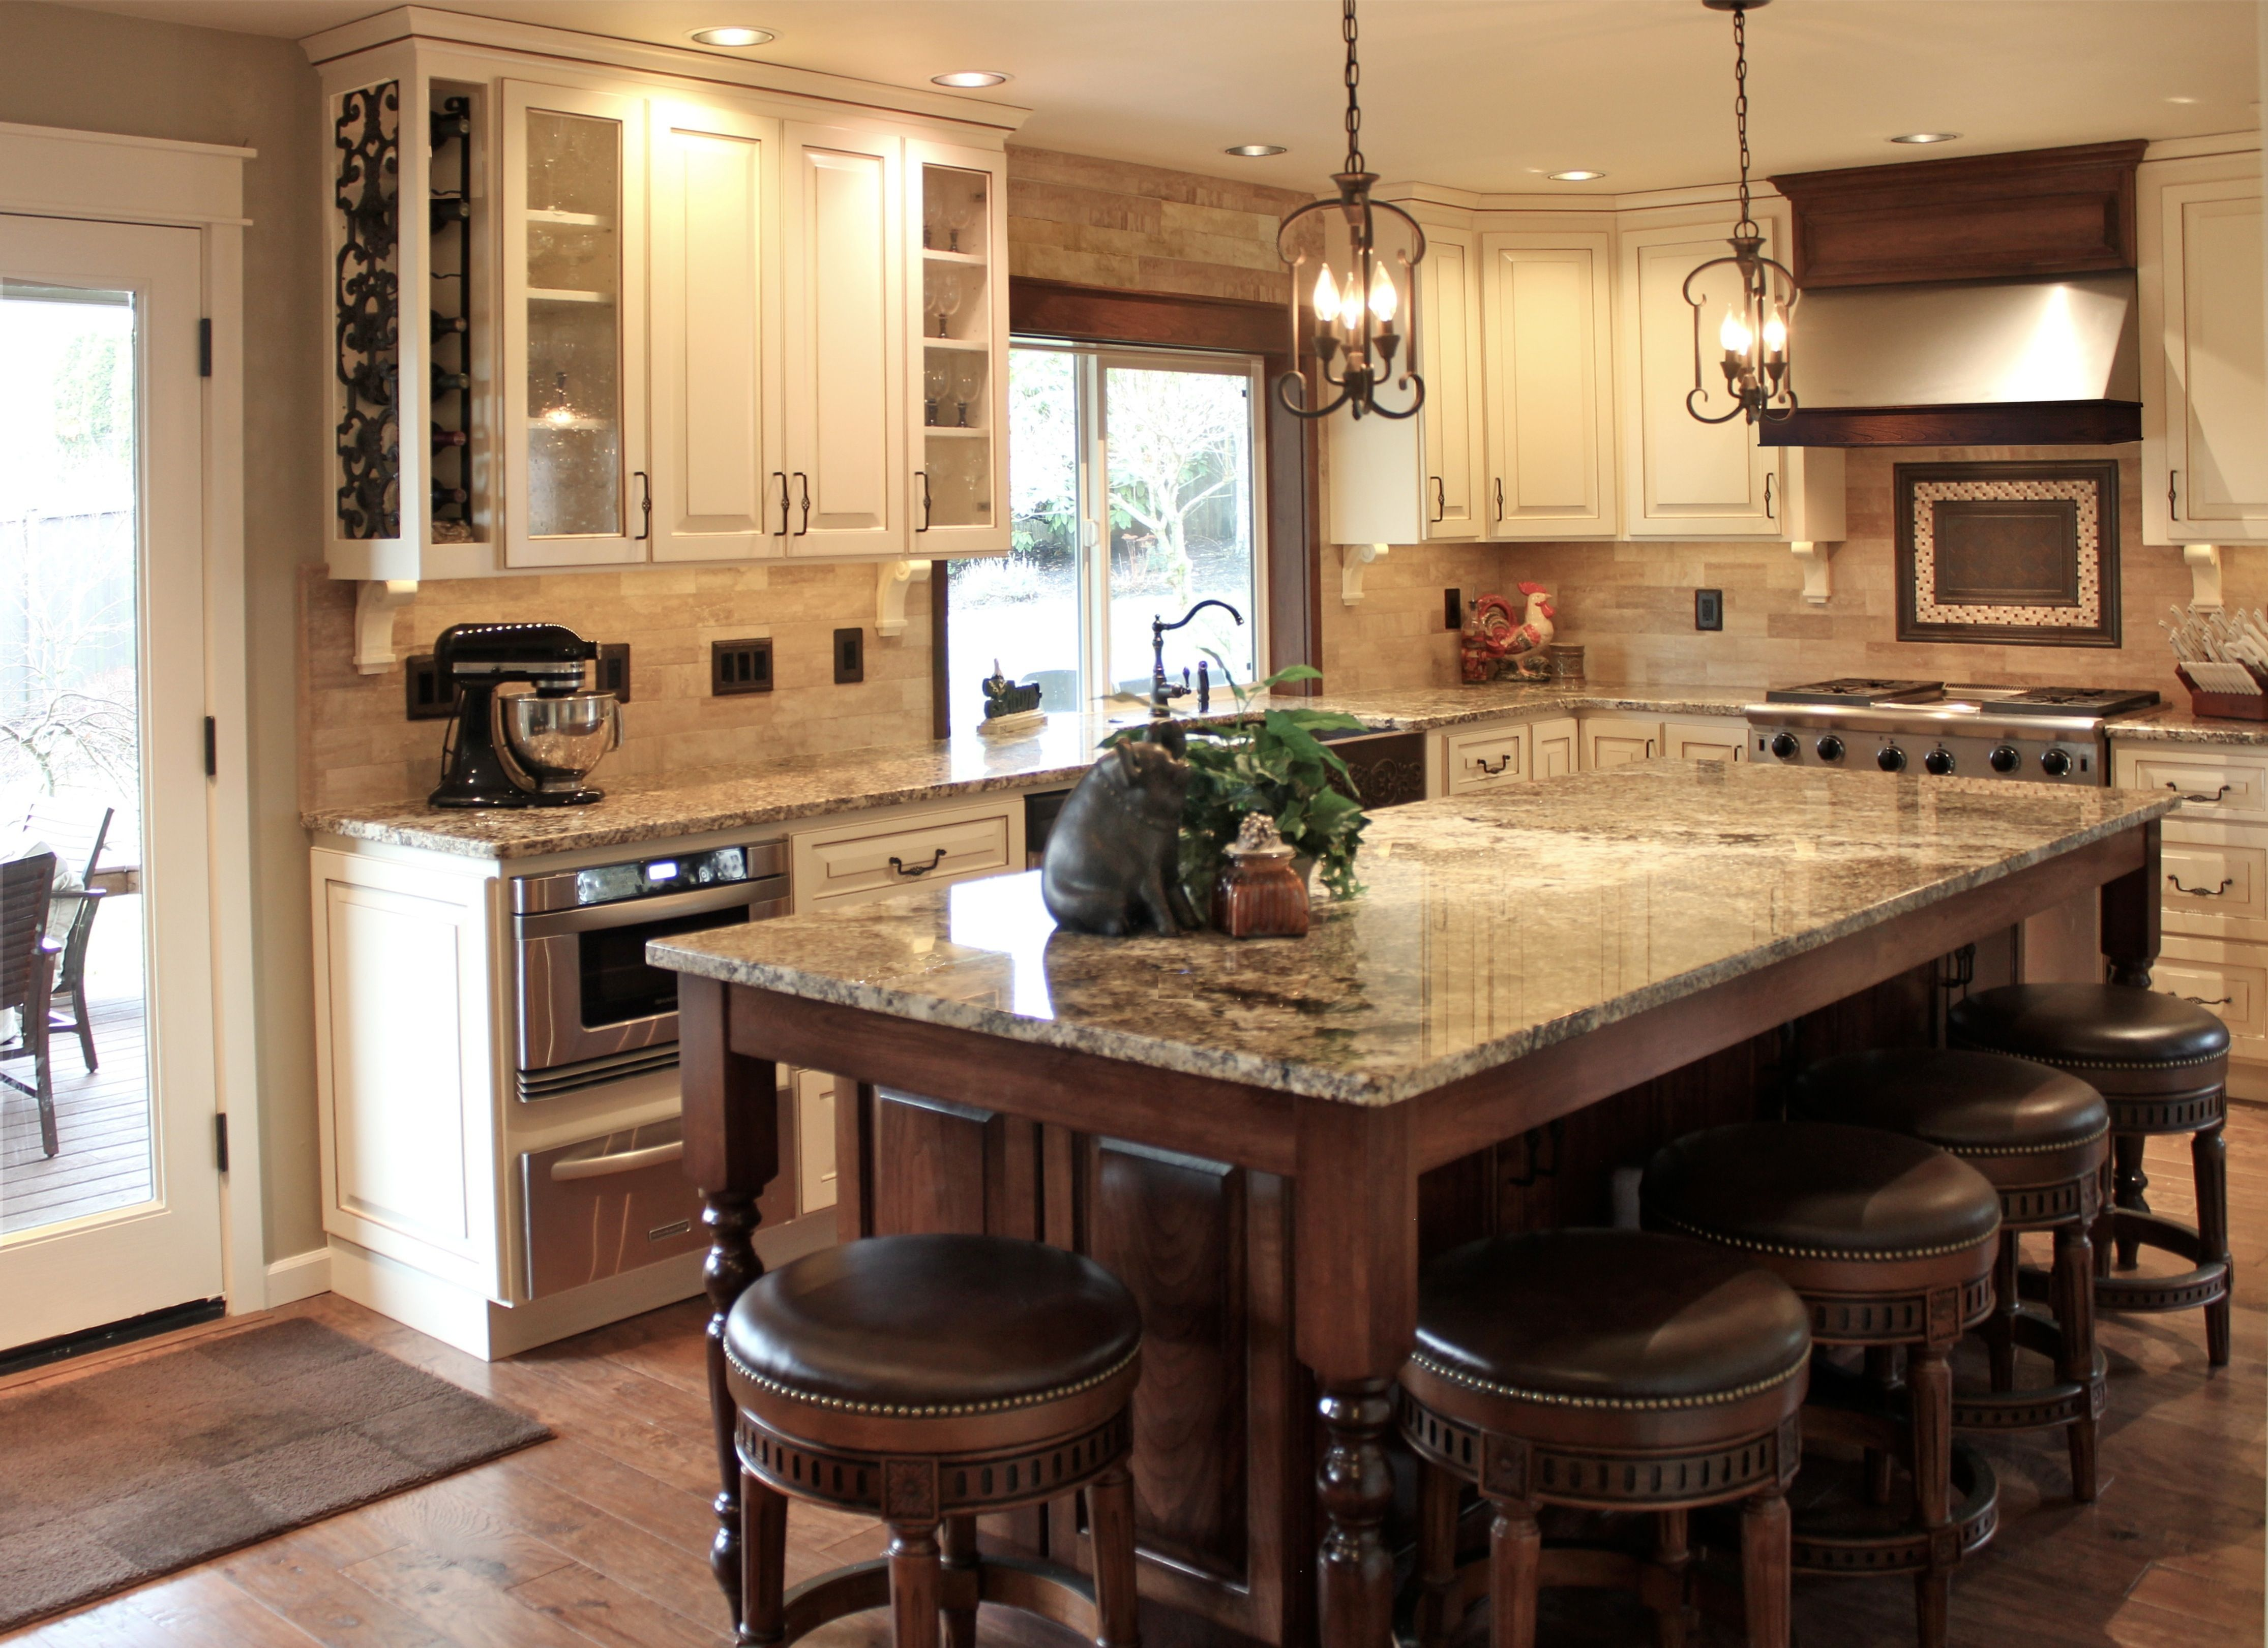 Tuscan kitchen inspirational kitchens pinterest for Small tuscan kitchen designs